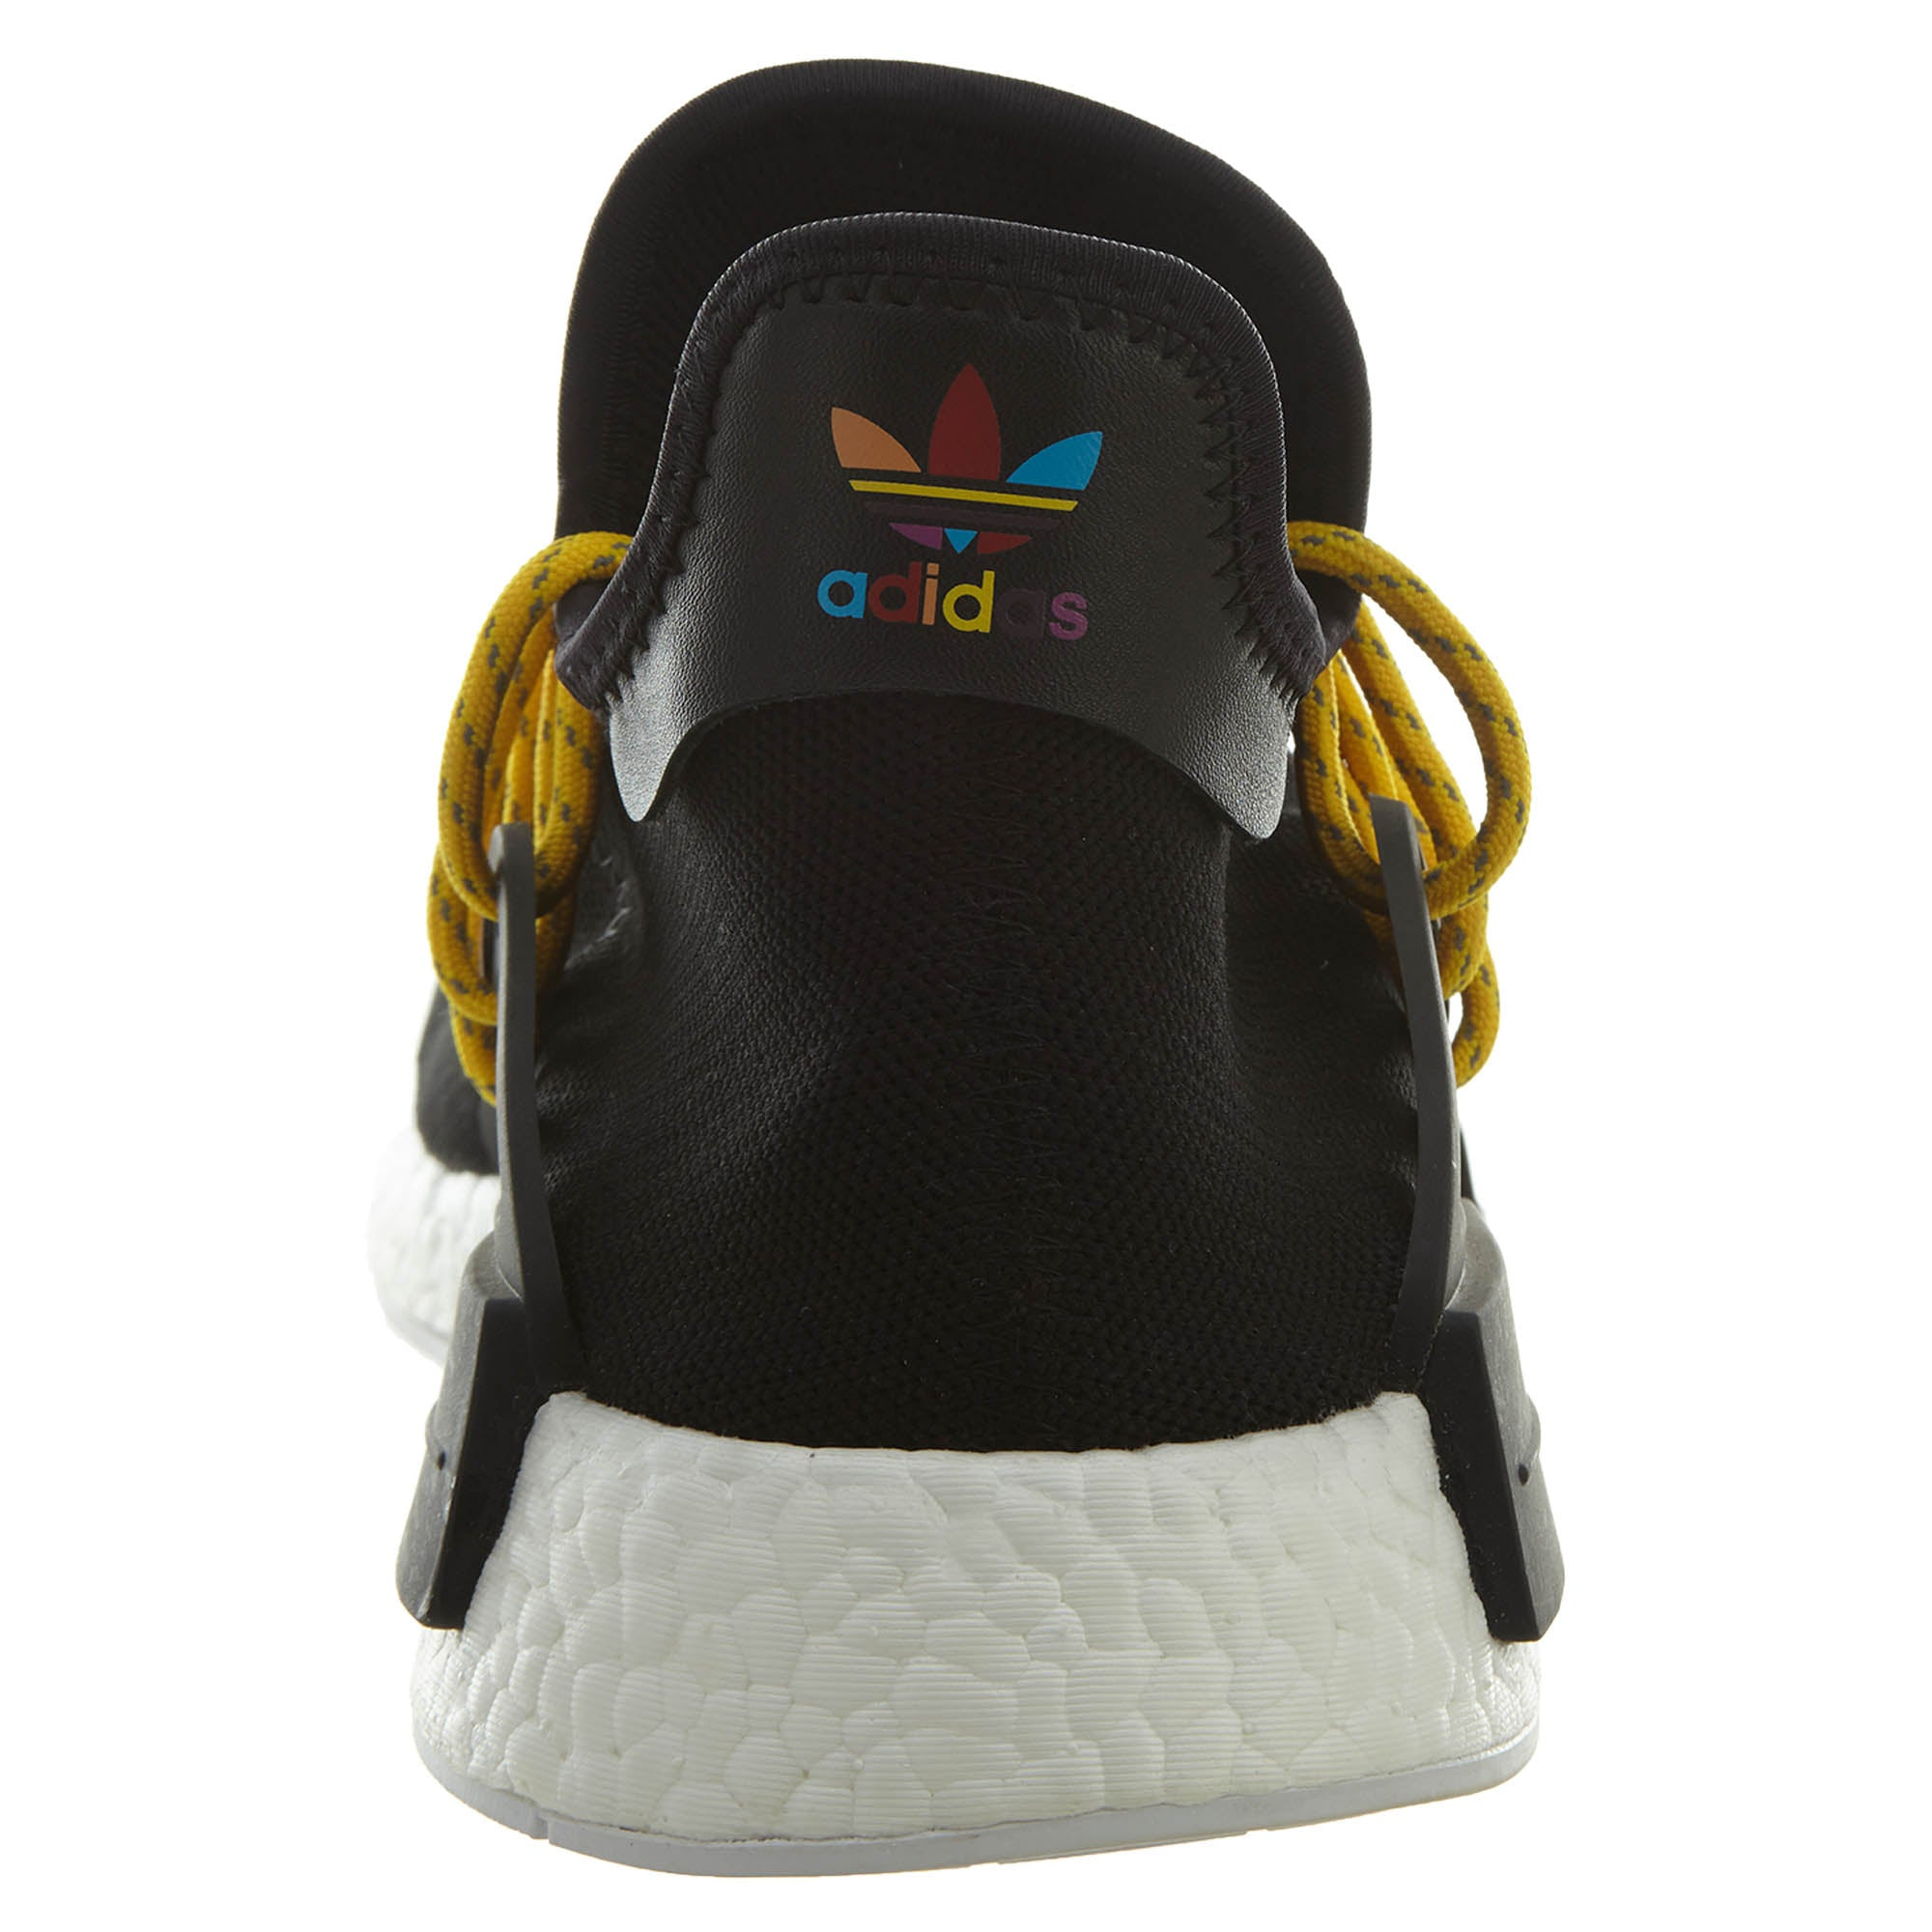 bbec53735a379 Adidas Pw Human Race Nmd Mens Style   Bb3068 · ADIDAS   Athletic Shoes    Sneakers